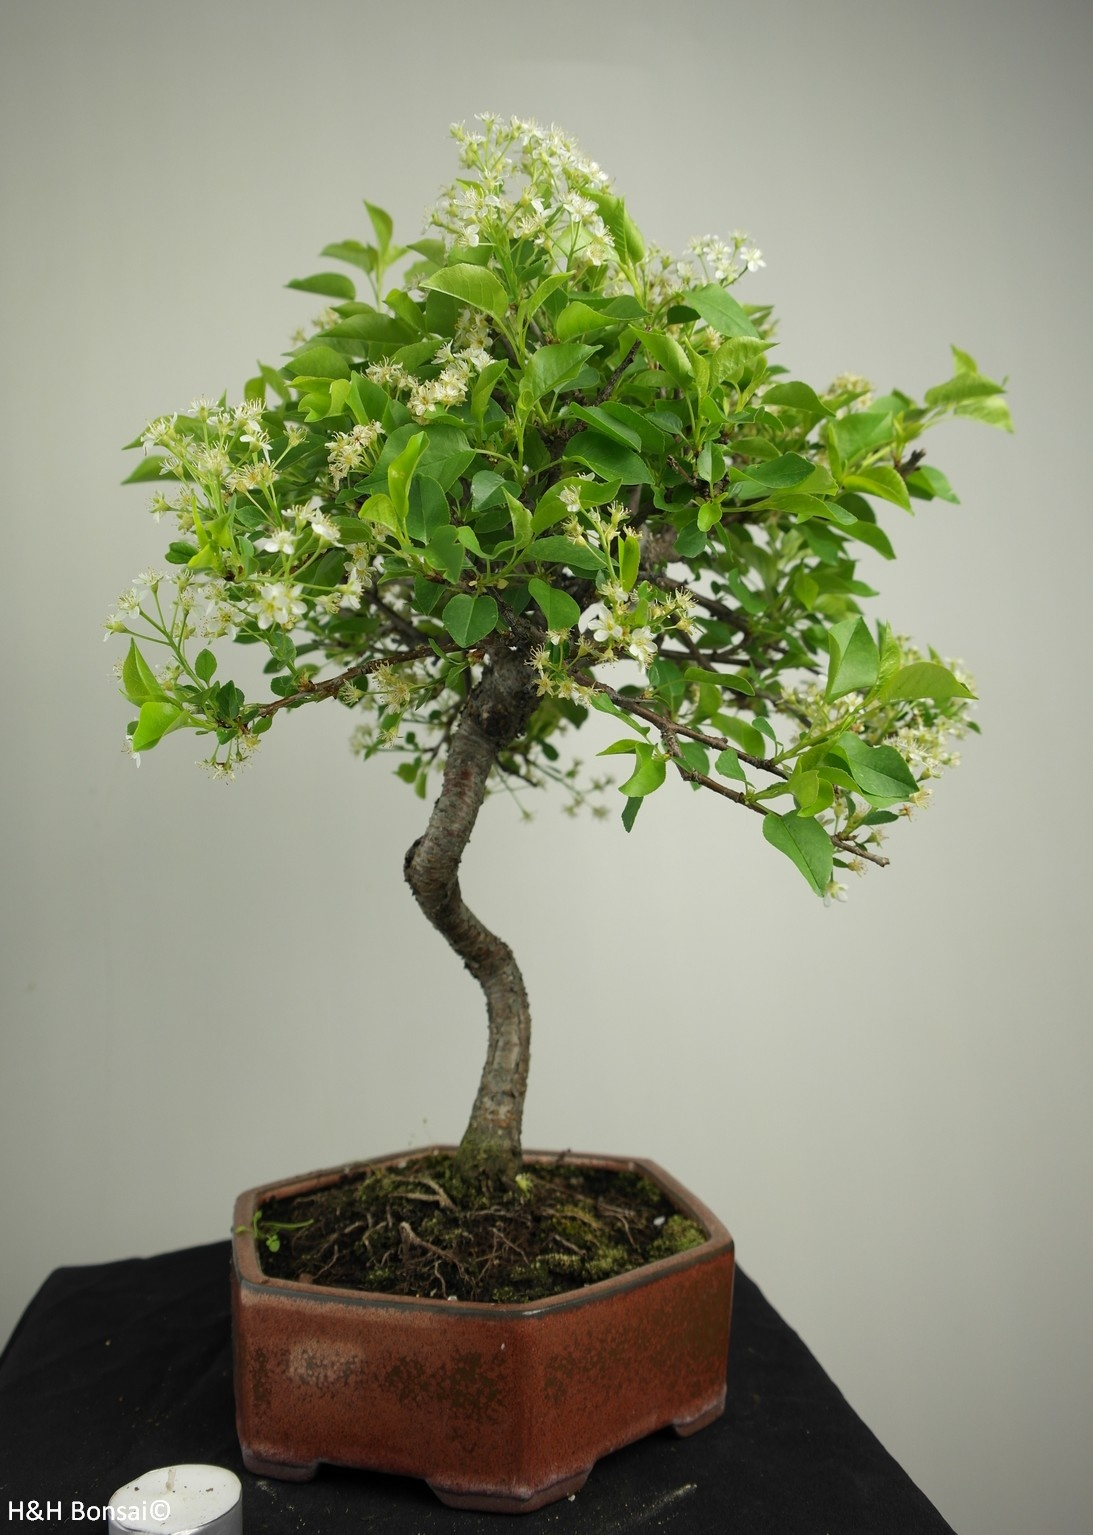 Bonsai Faux merisier, Prunus mahaleb, no. 7667